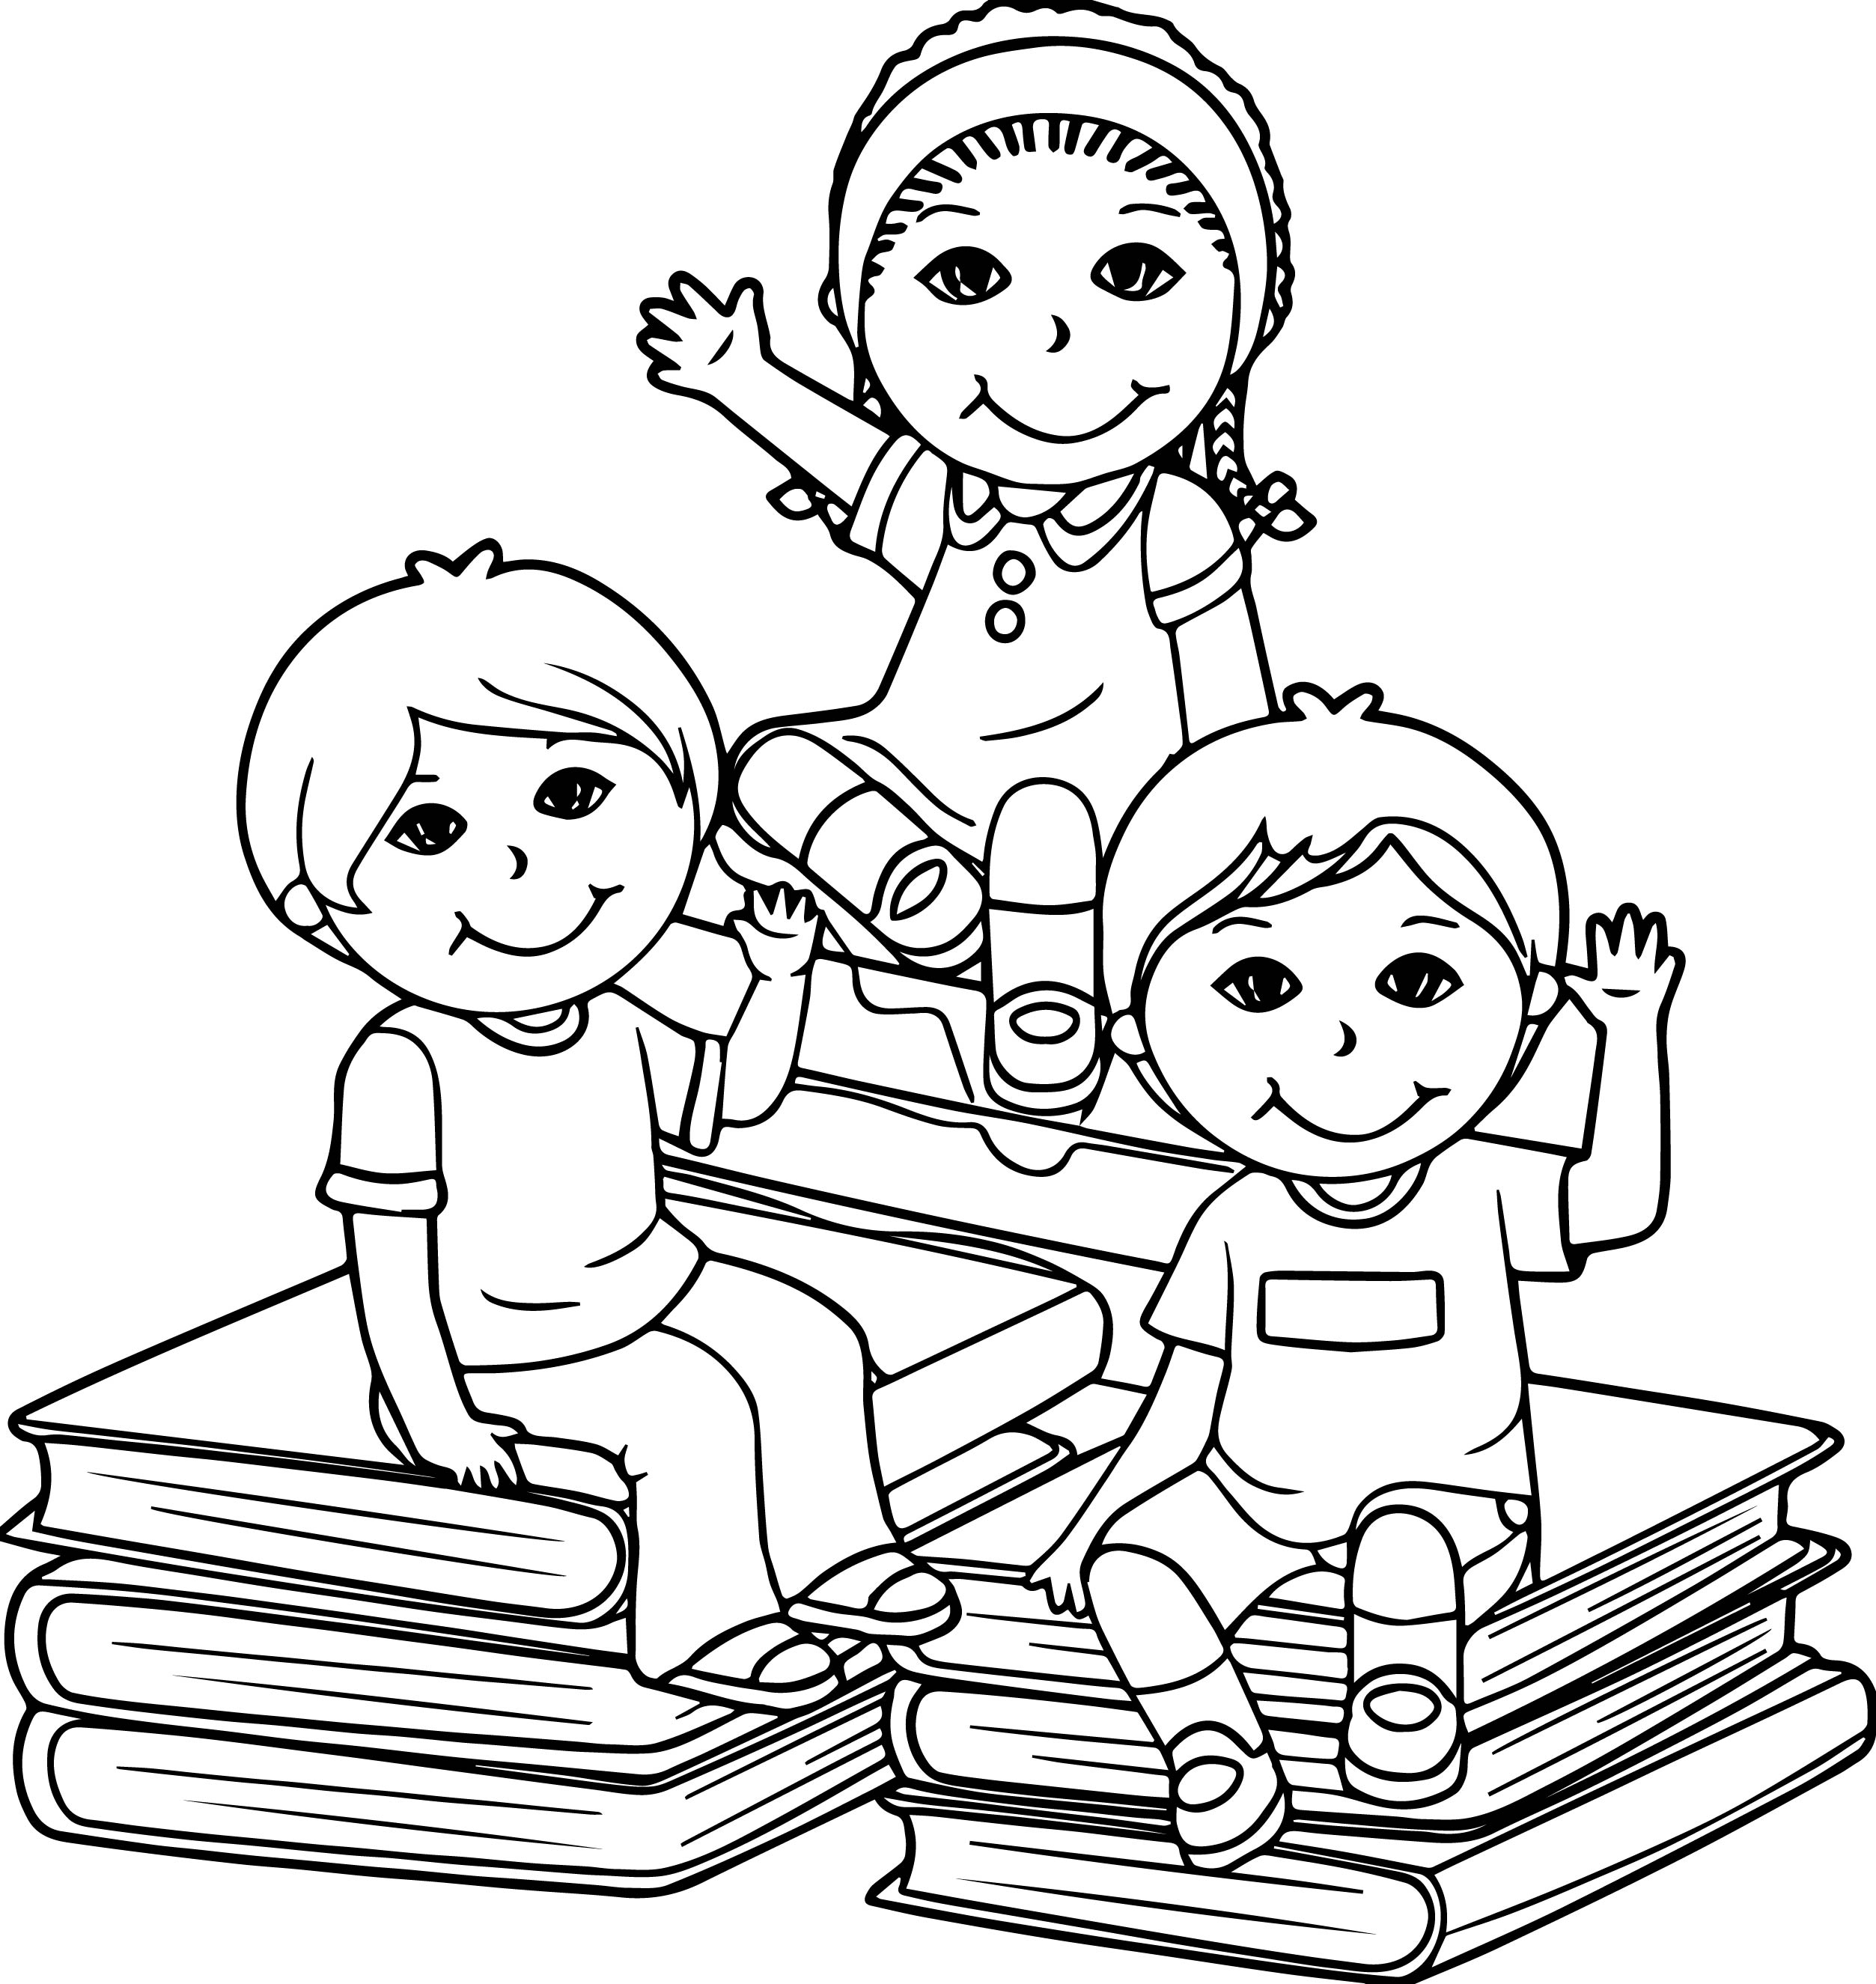 sit book children kids coloring page wecoloringpage